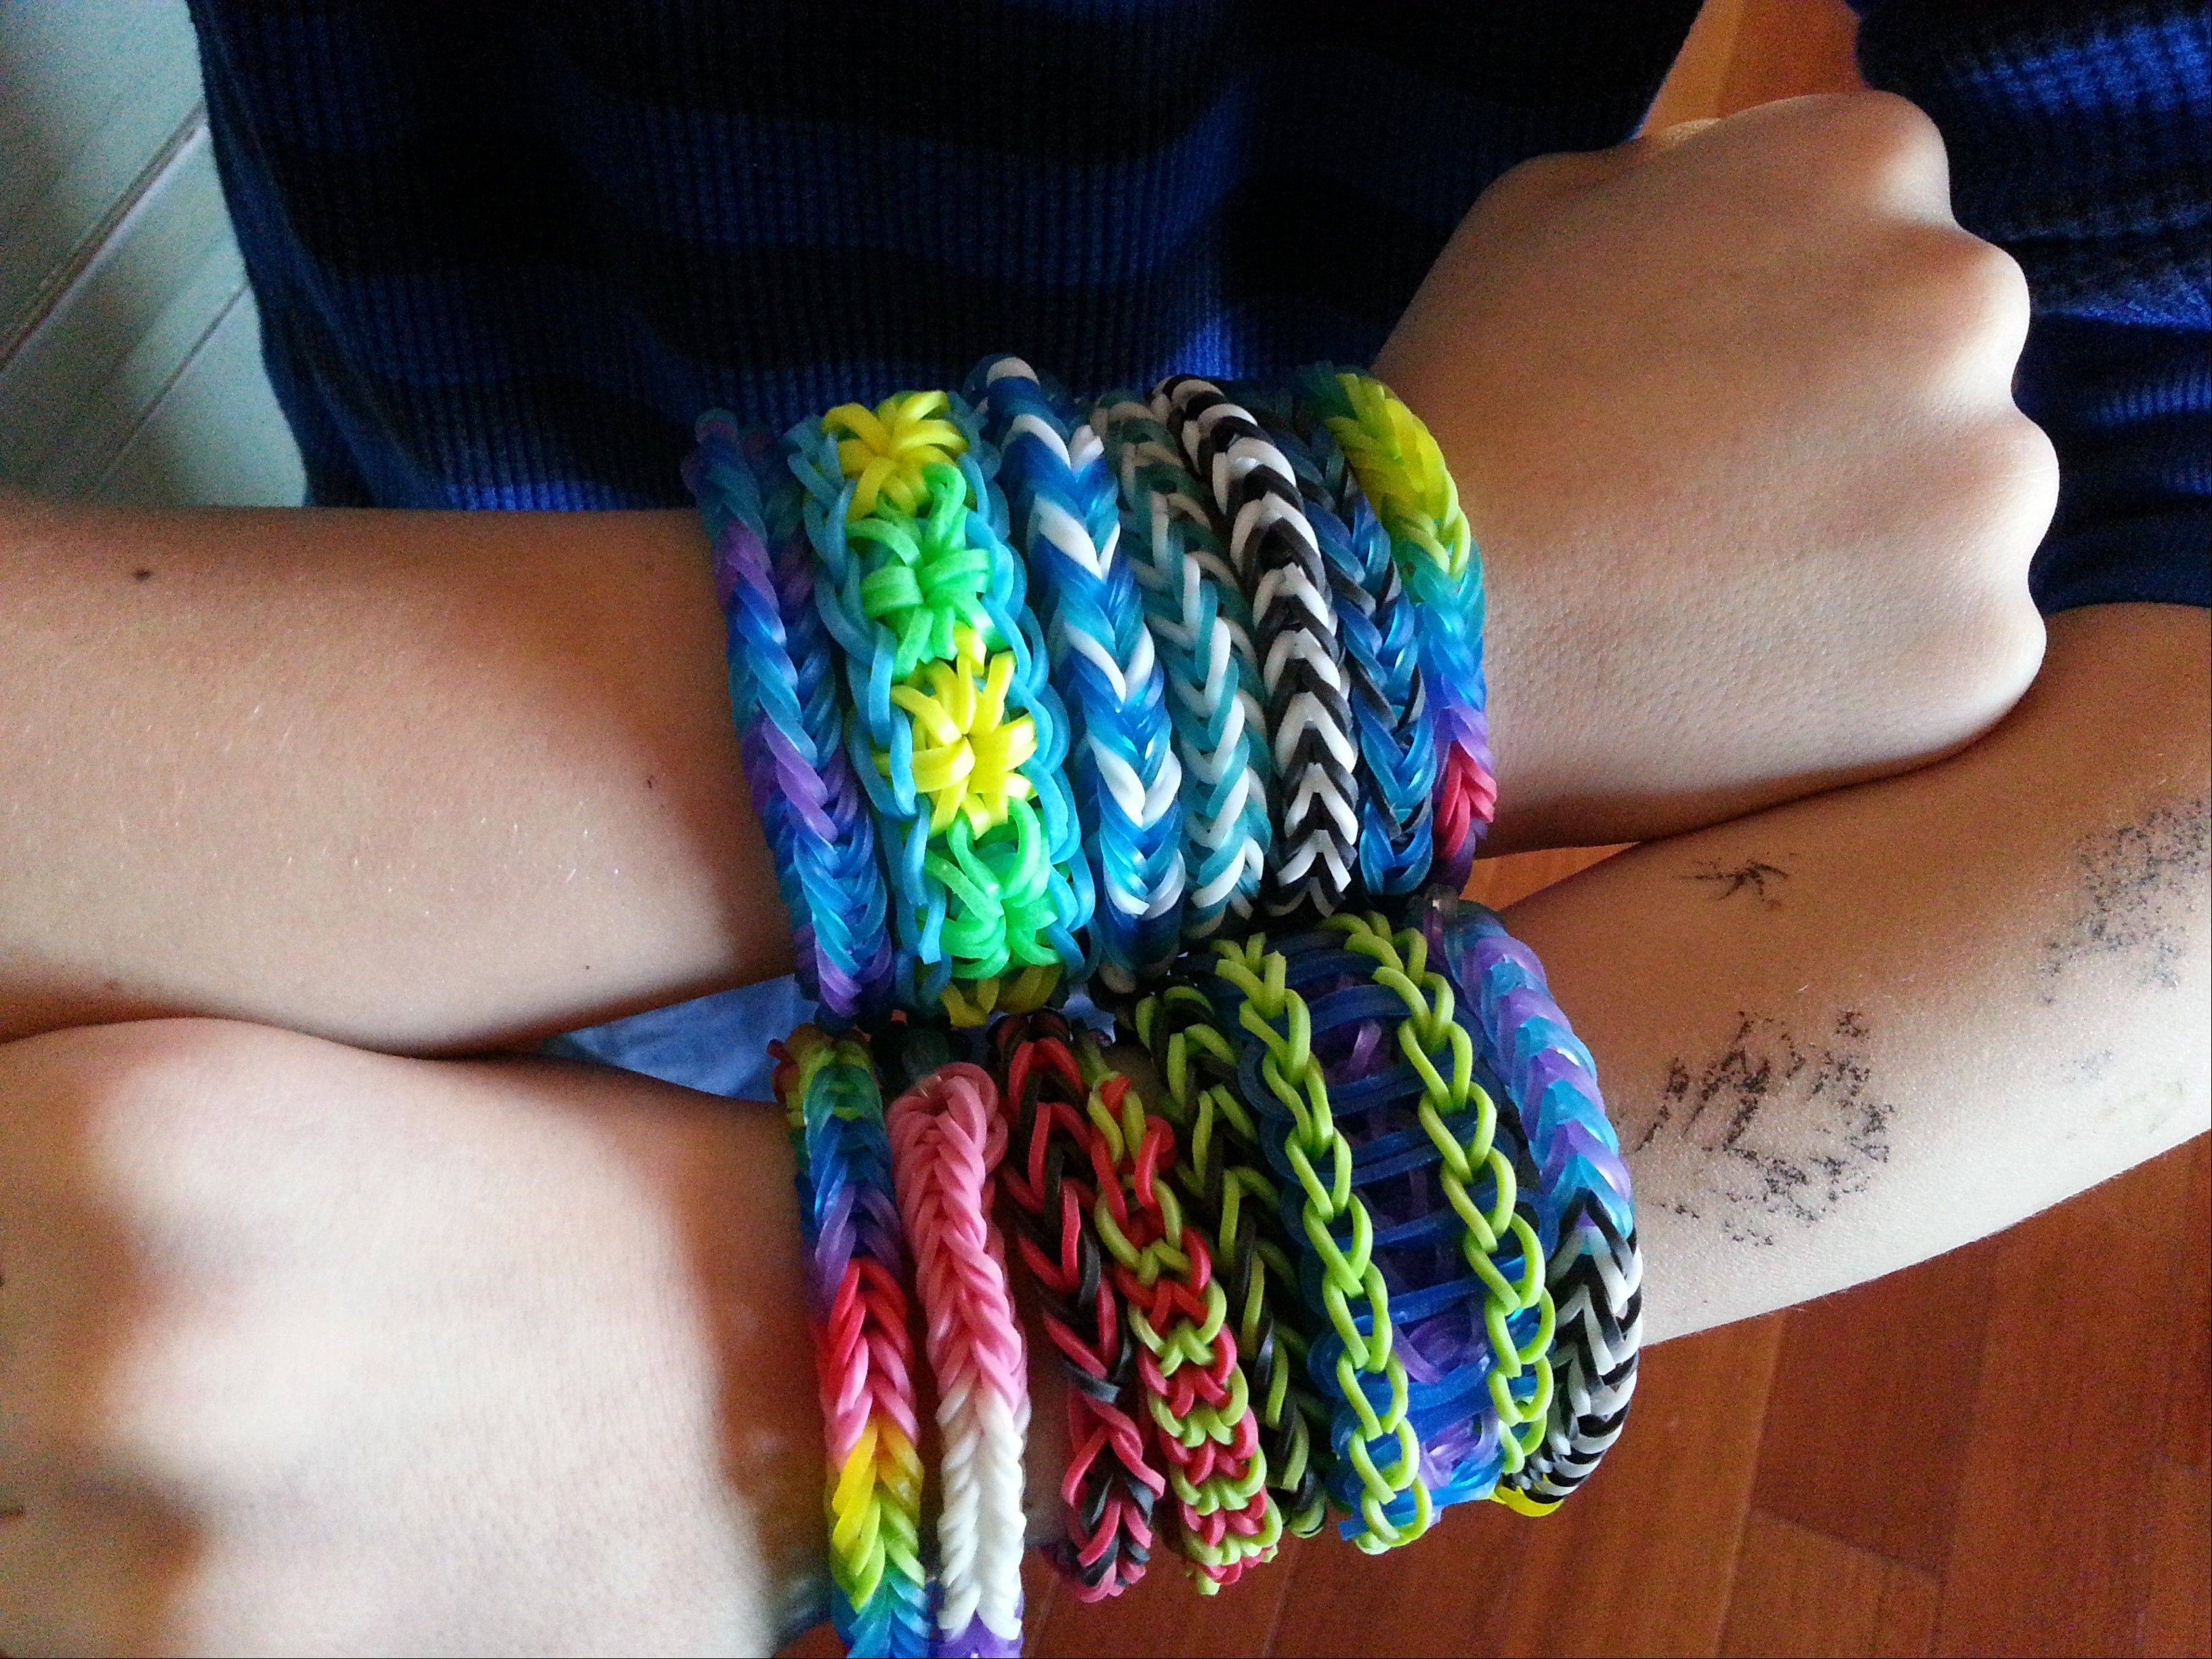 Cooper Volkman, 8, shows off the loom band bracelets that he made.